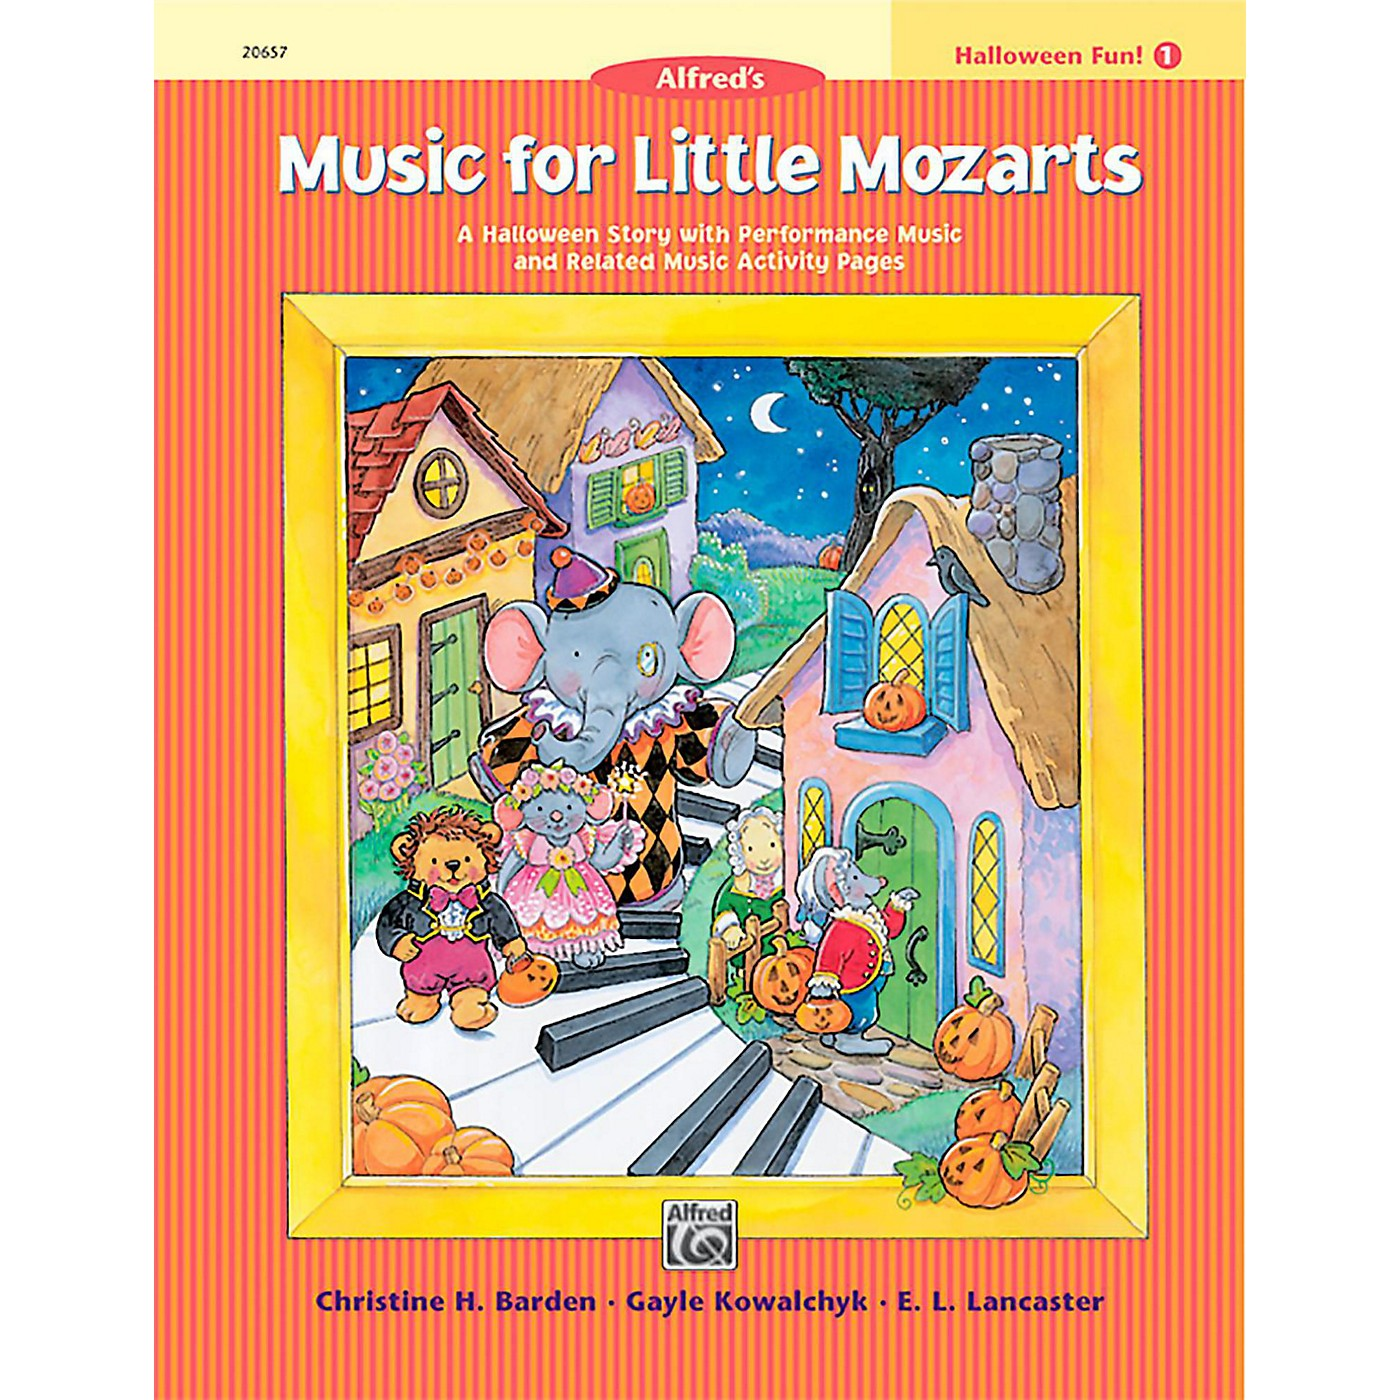 Alfred Music for Little Mozarts: Halloween Fun Book 1 thumbnail